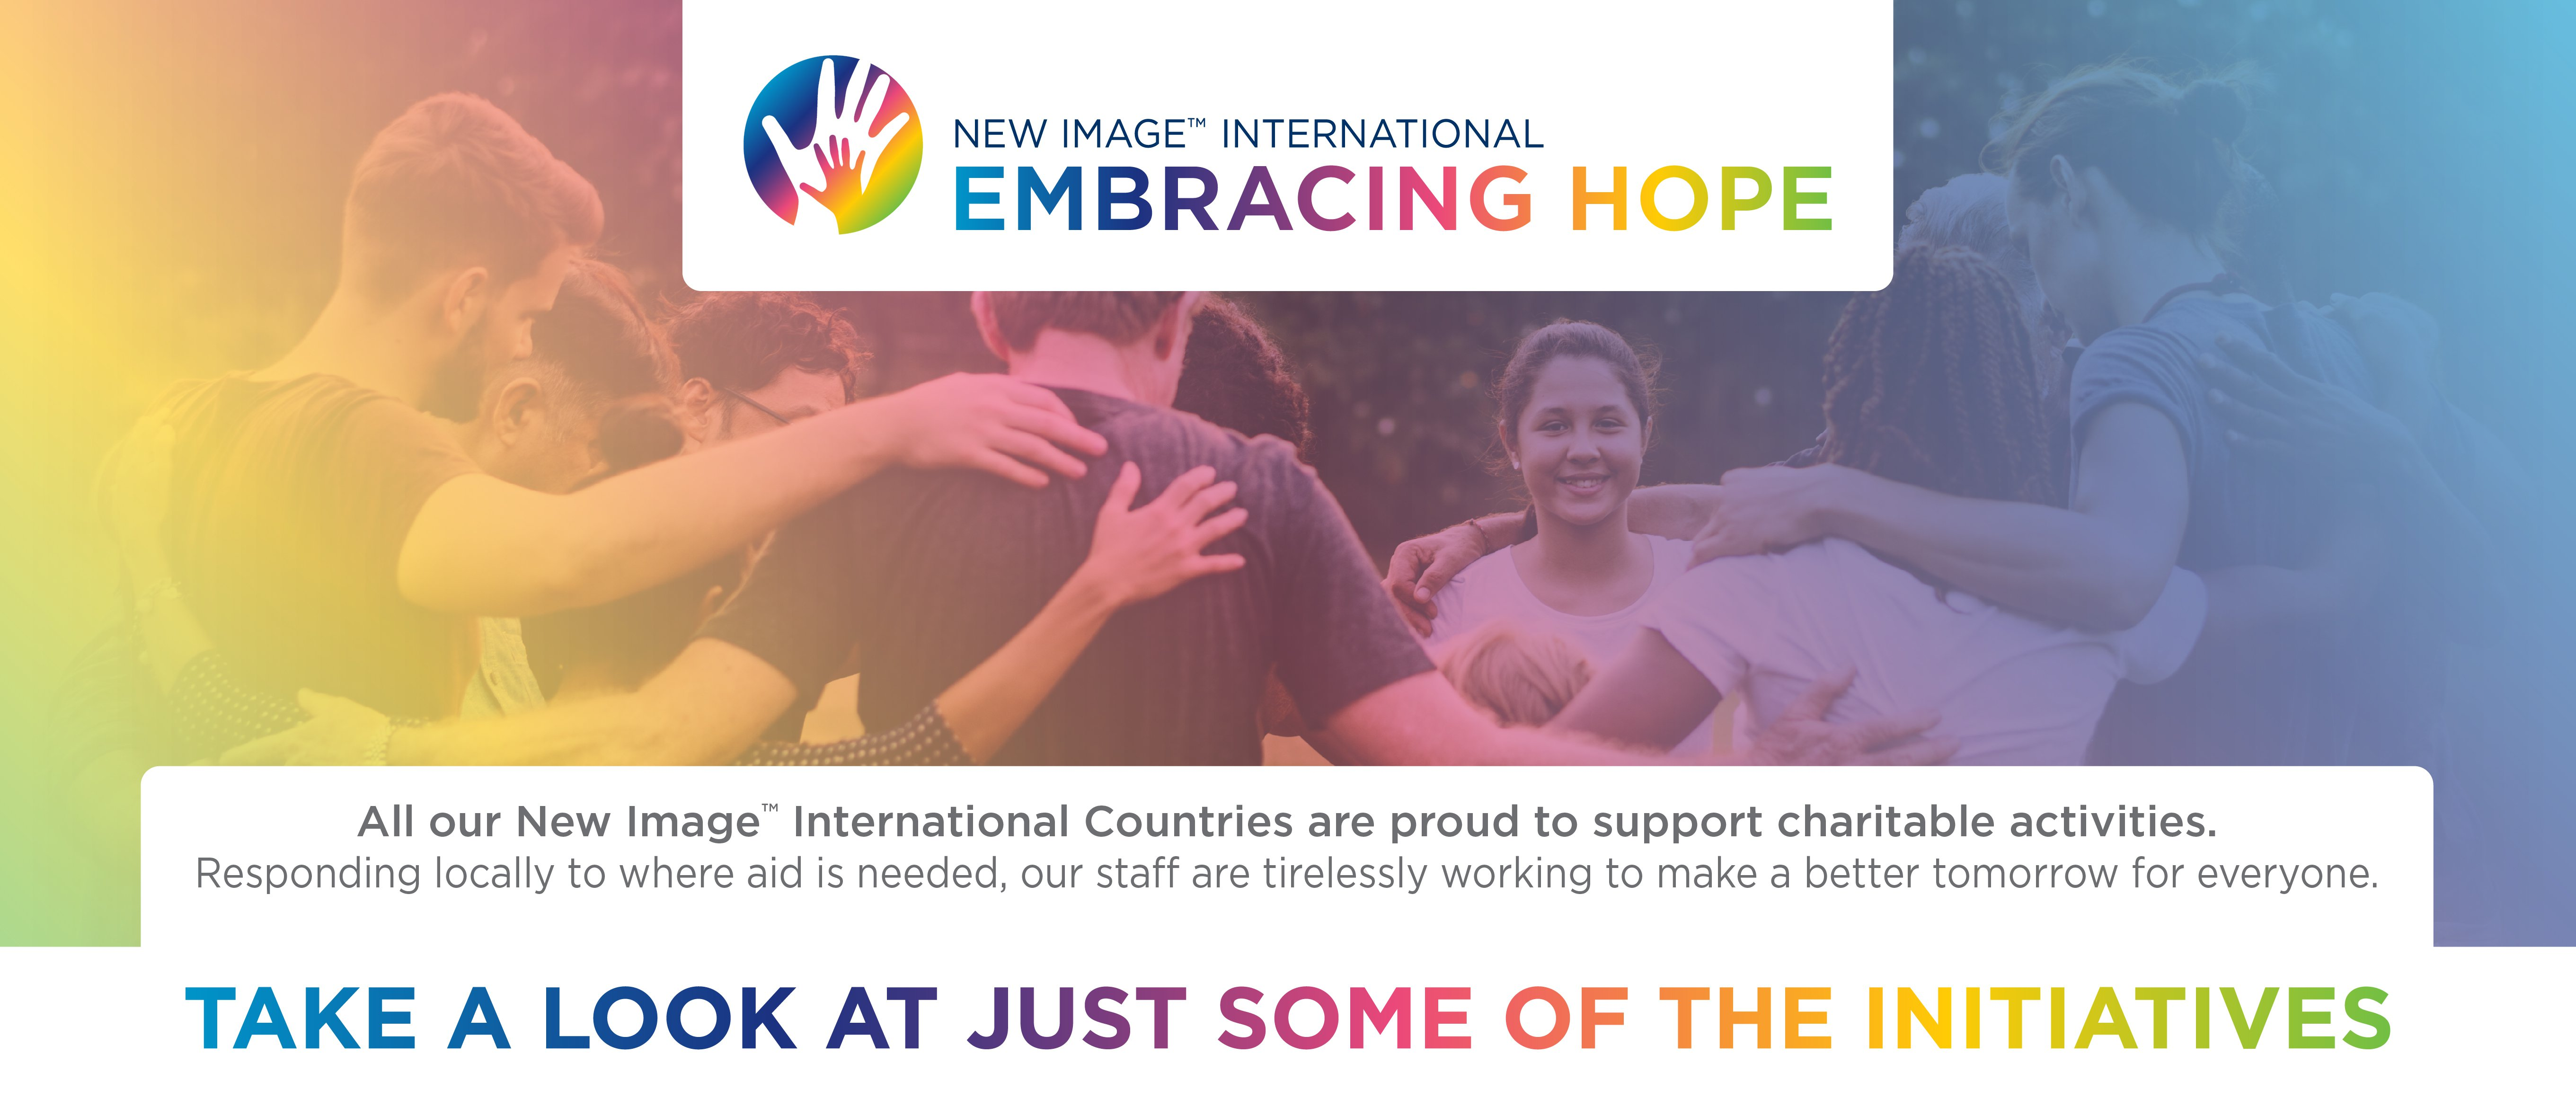 New_Image™ International | Embracing Hope